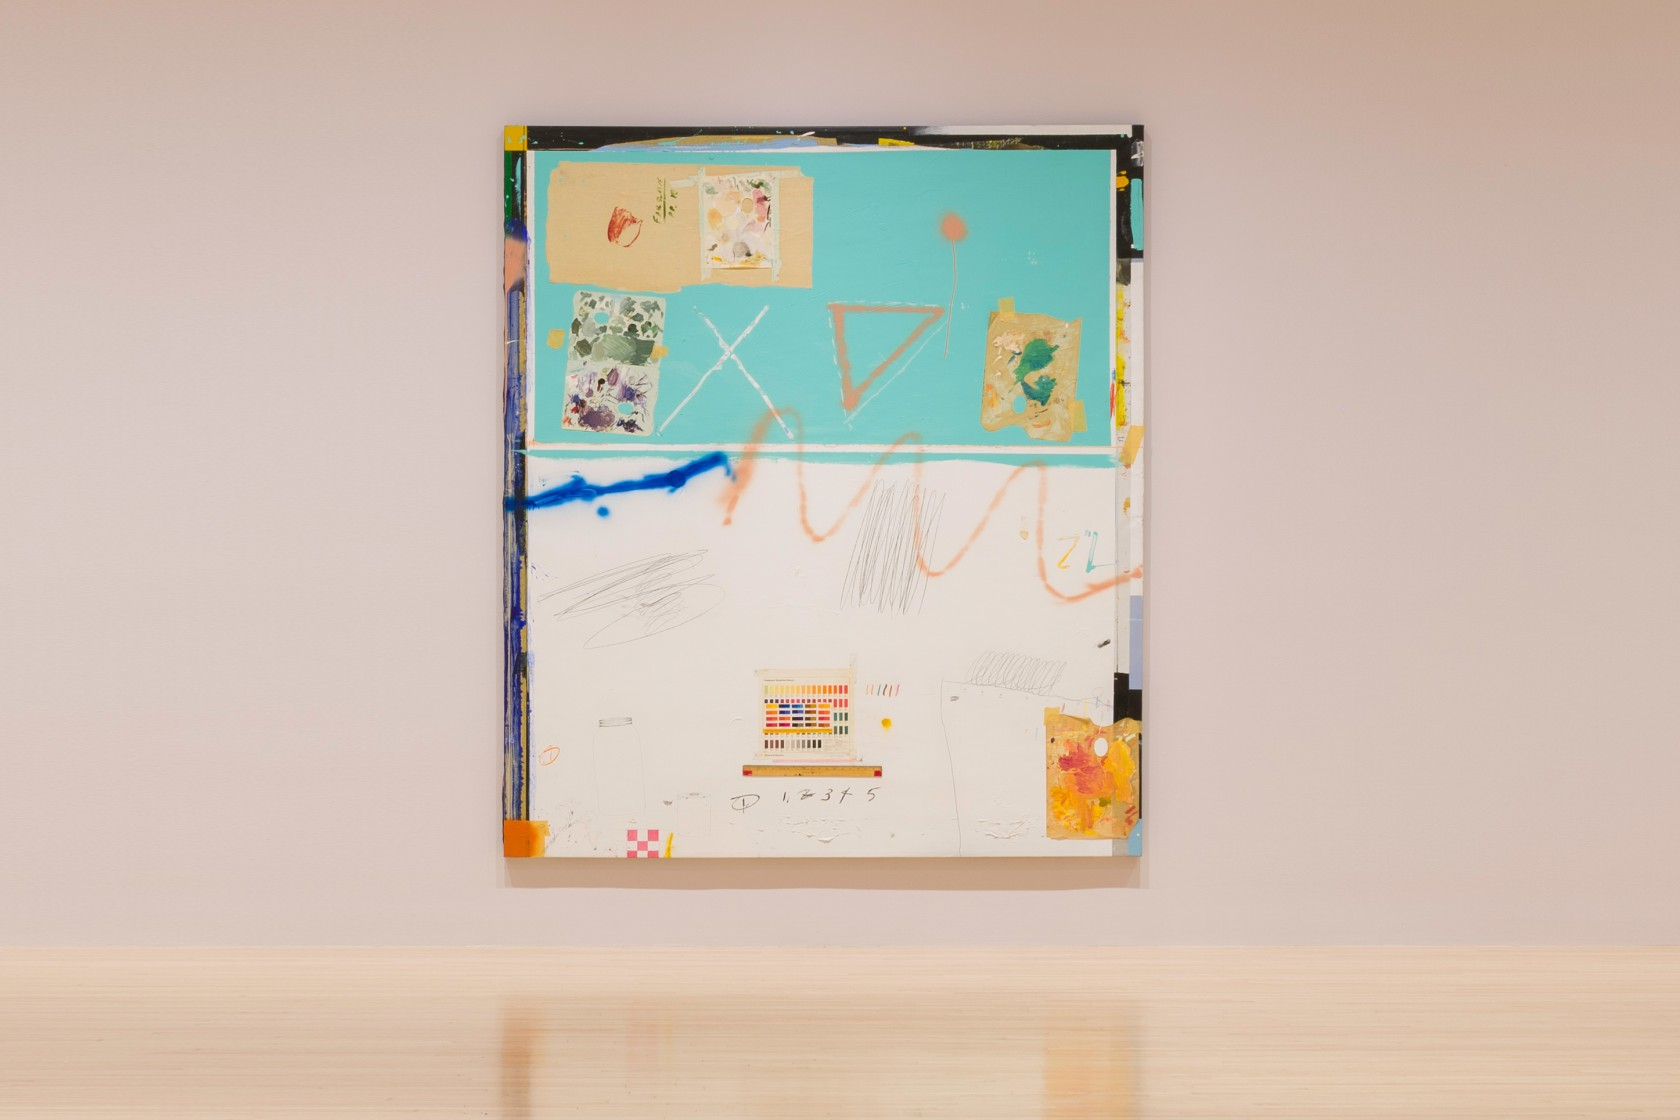 Raymond Saunders, Palette, 1983, oil, enamel, graphite, and oil pastel on canvas, 94 1/2 x 82 1/2 x 1 1/2 in. (240.03 x 209.55 x 3.81 cm). The Museum of Contemporary Art, Los Angeles. Gift of Joseph R. Austin.